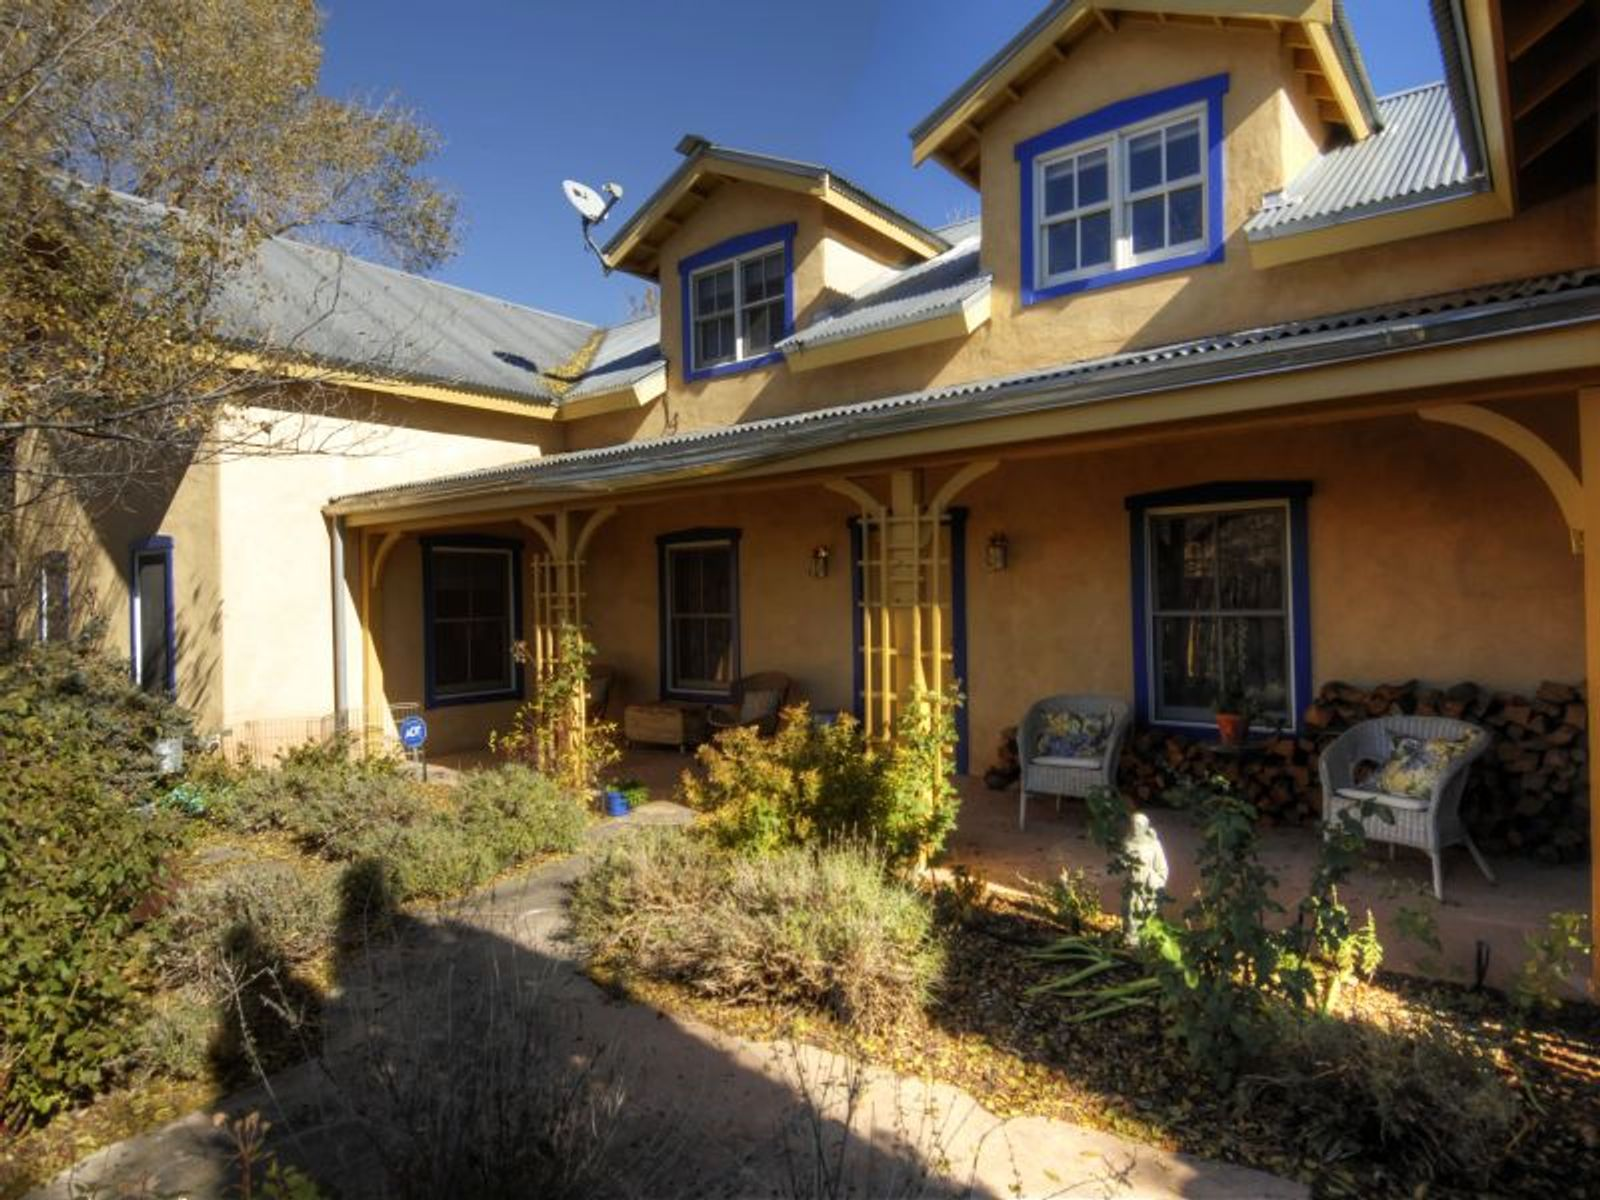 549 Del Norte Lane, Santa Fe NM Single Family Home - Santa Fe Real Estate